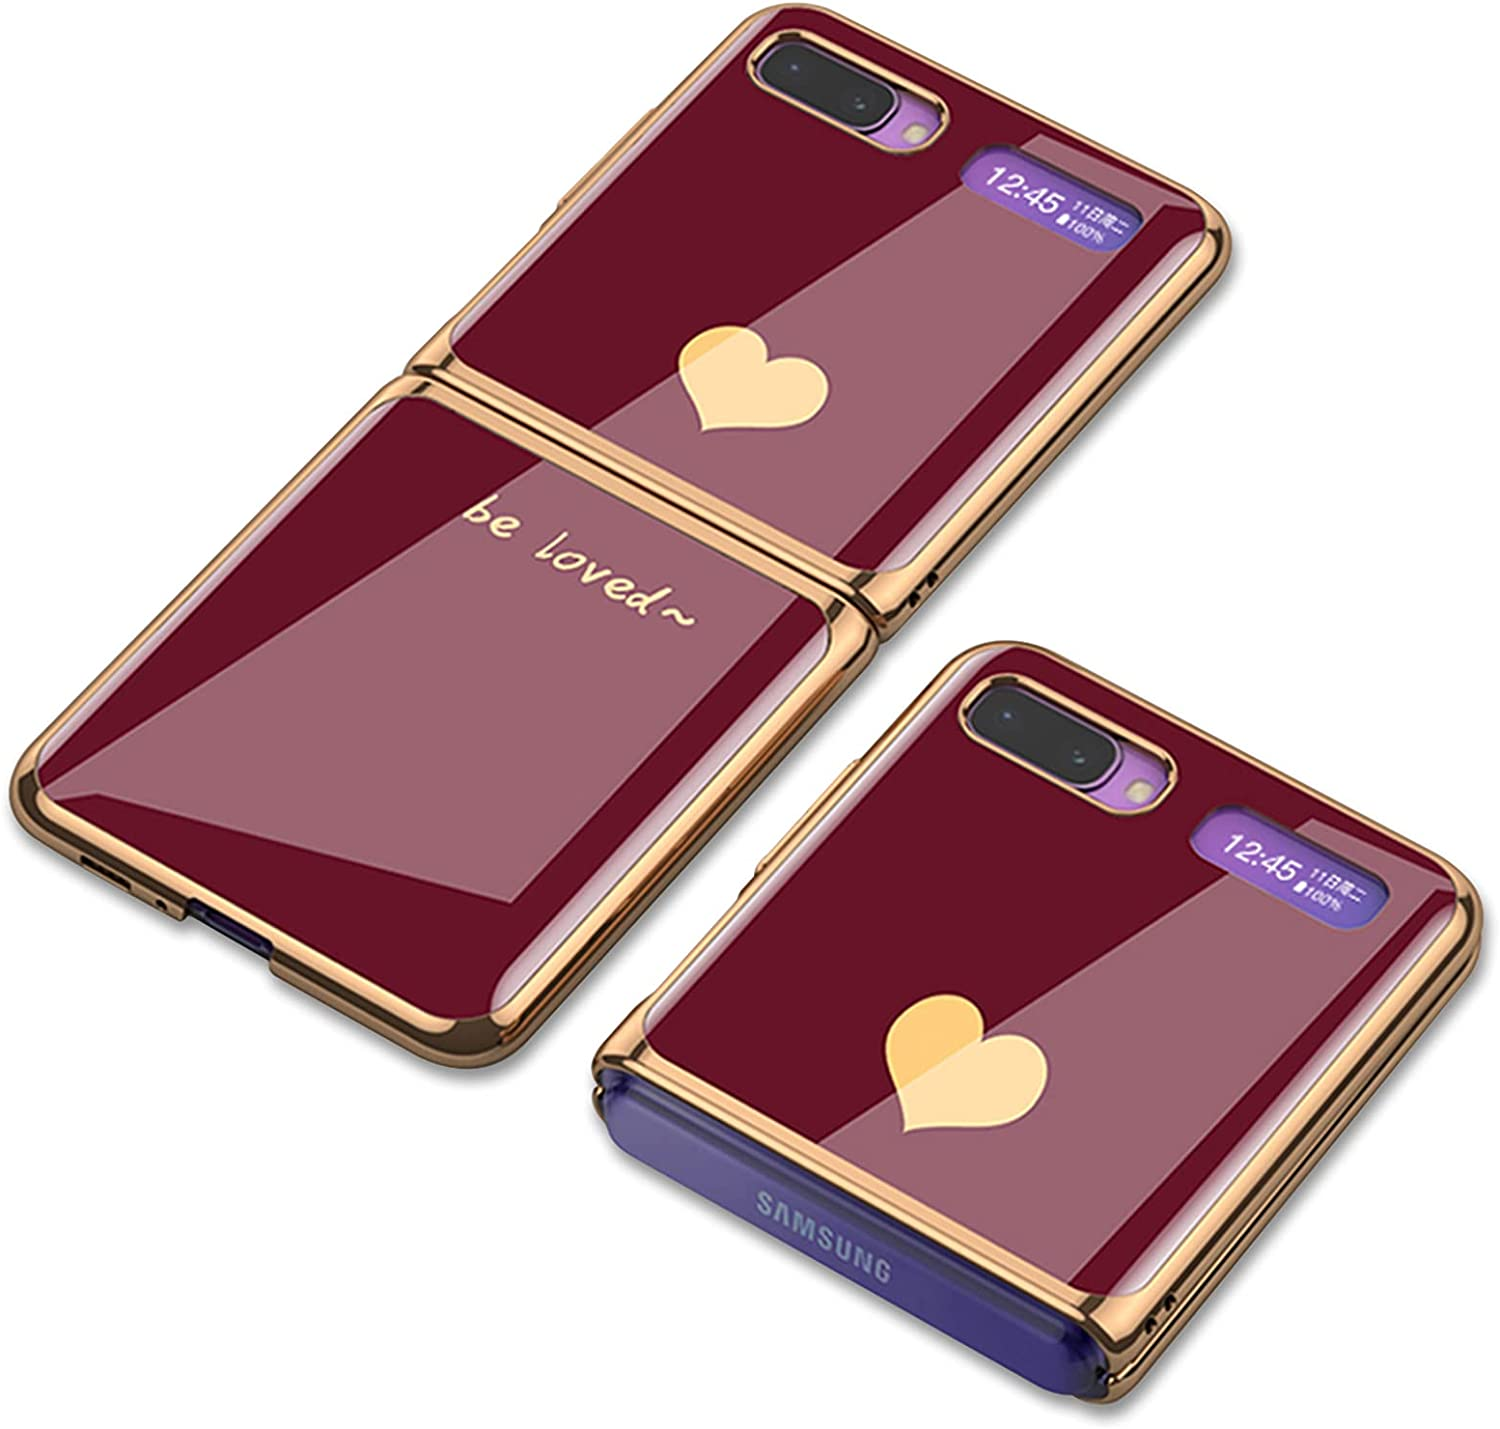 Jusy Samsung Galaxy Z Flip Case with Heart Pattern Design for Women, Slim Fit, Luxury and Elegant Ultra-Thin Protective Case for Galaxy Z Flip 5G (Burgundy+Gold)